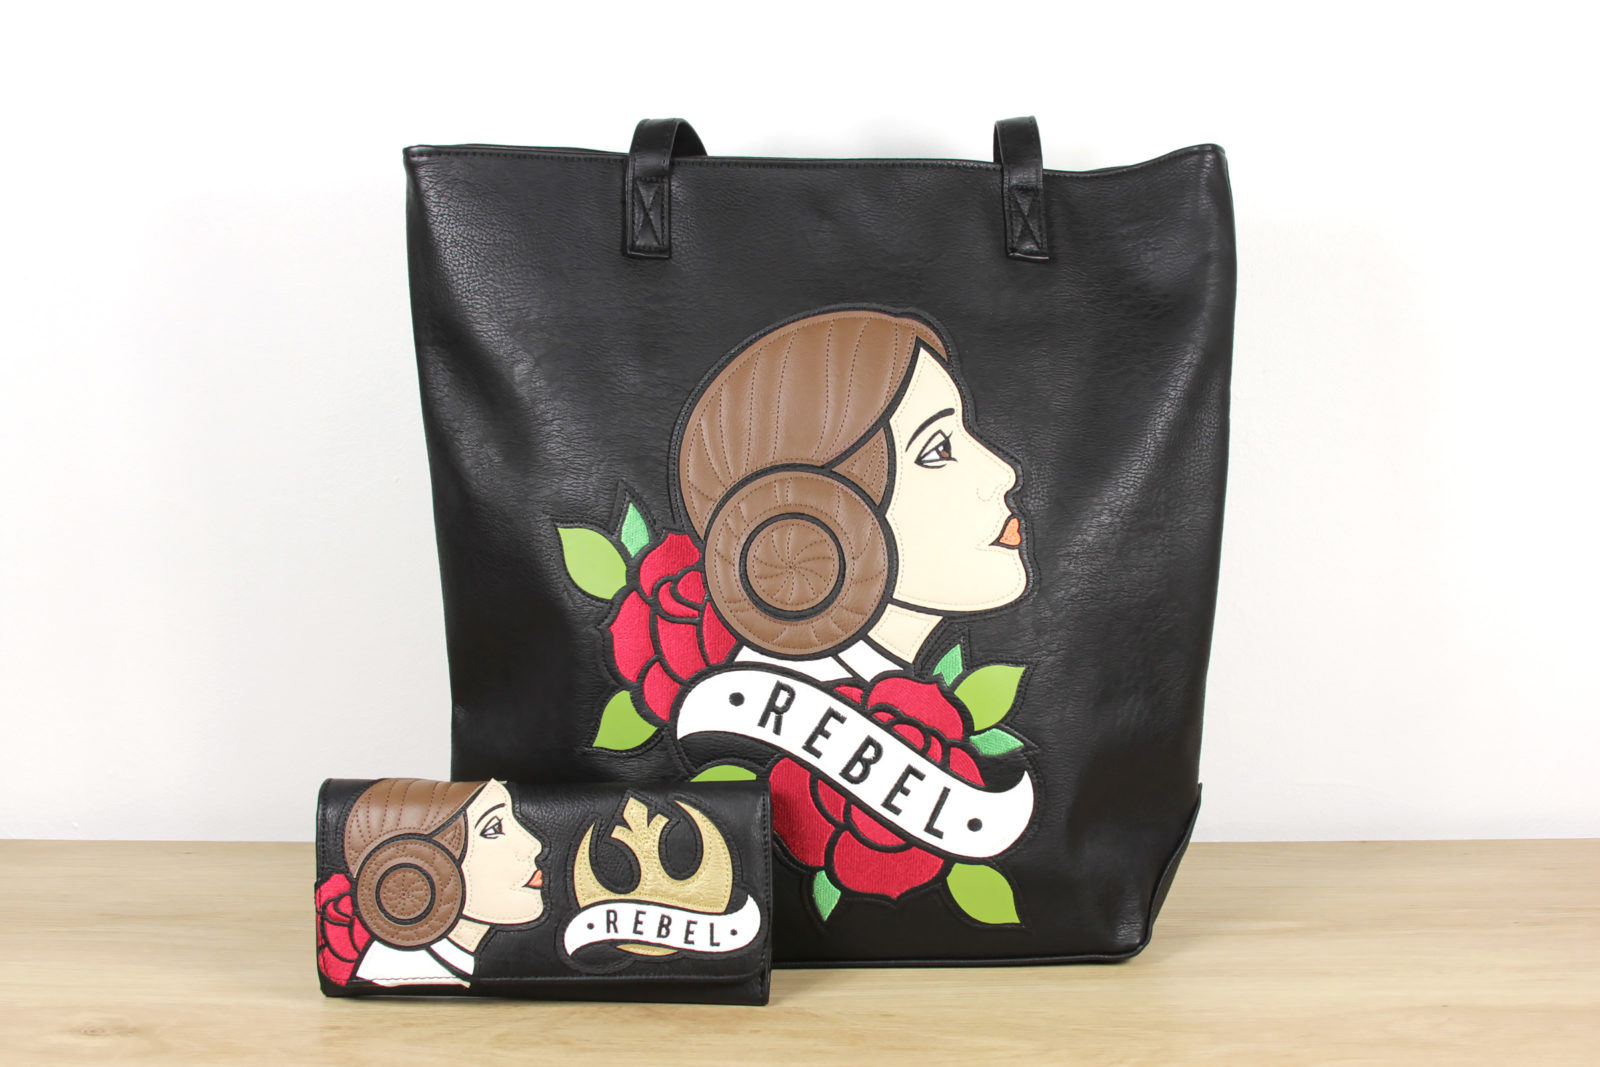 Loungefly x Star Wars Princess Leia Tote Bag and Wallet